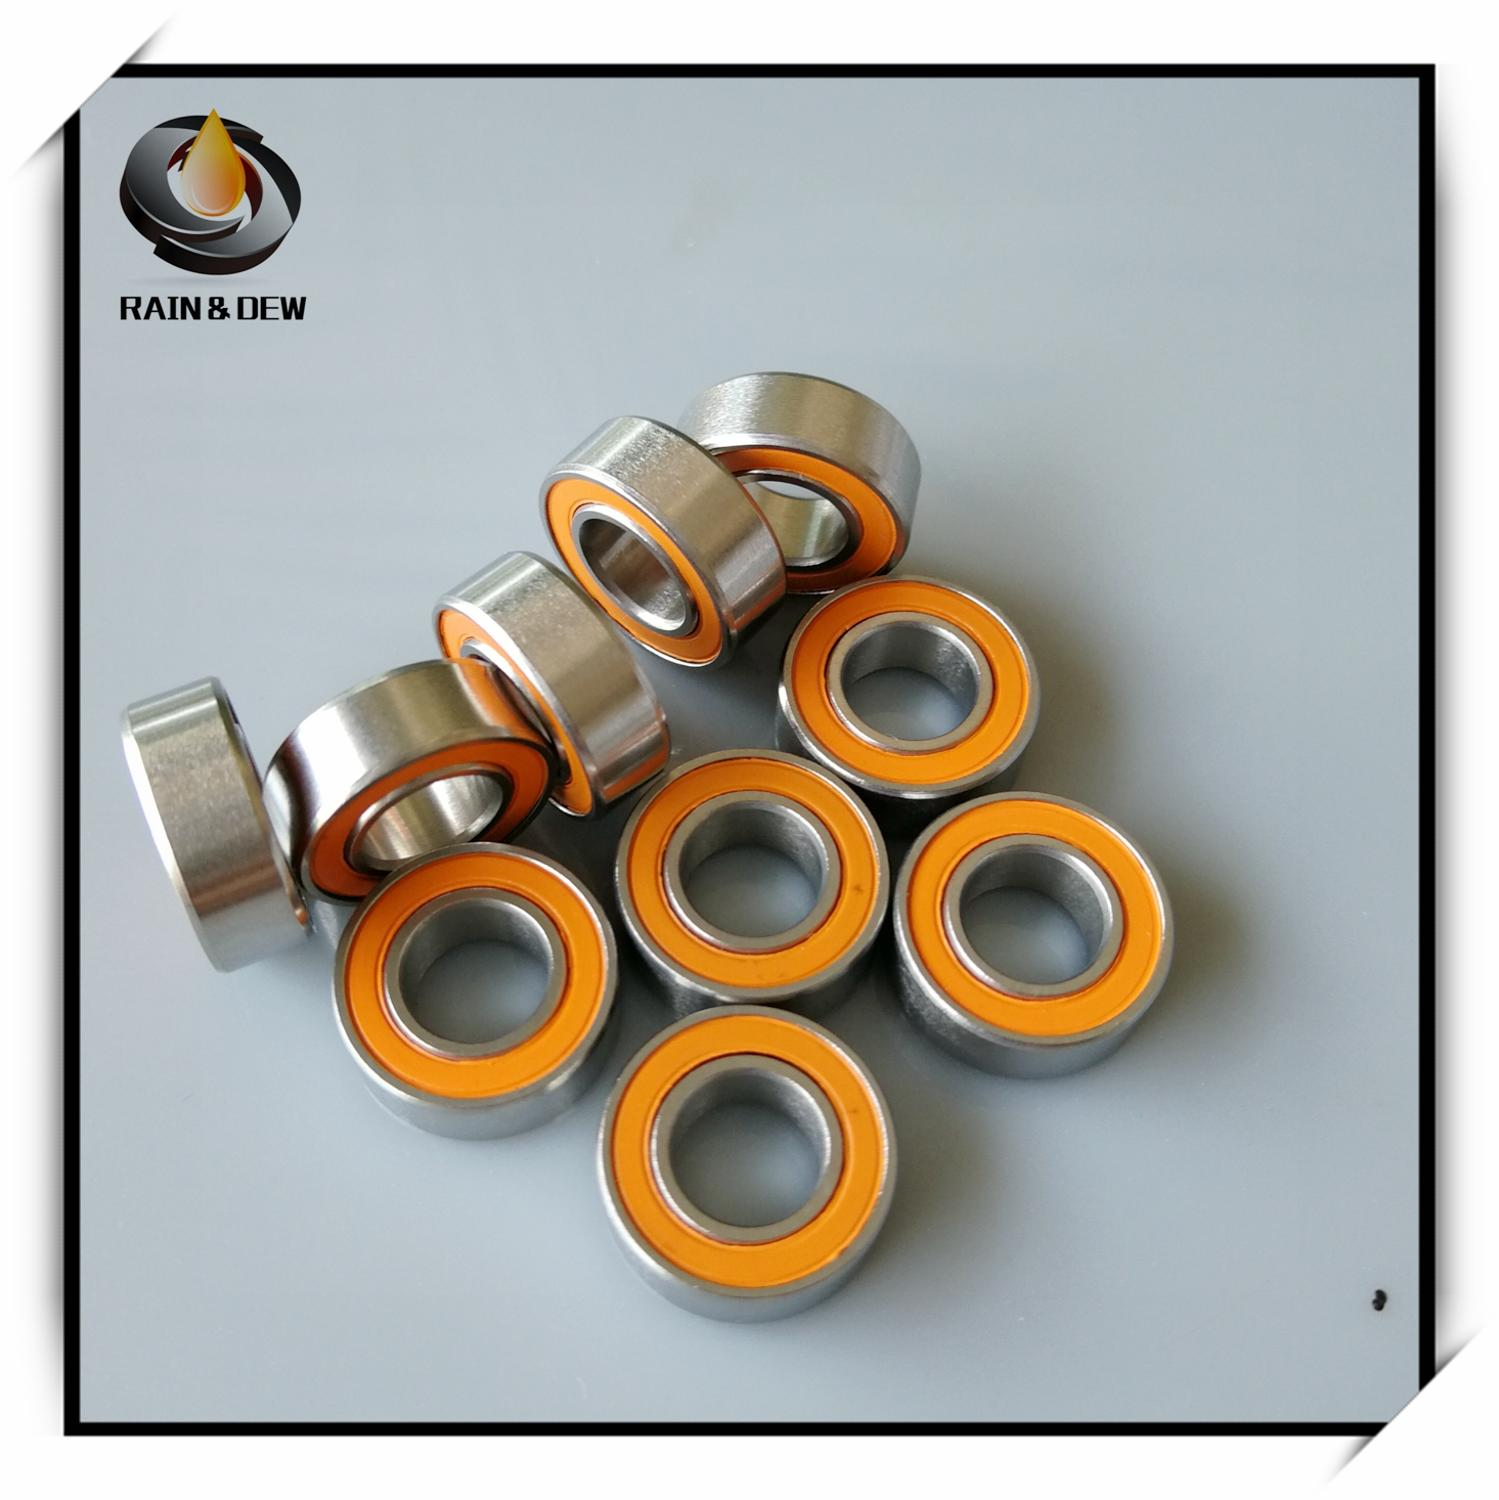 1Pcs  S687 2RS CB ABEC7 7x14x5 Mm Stainless Steel Hybrid Ceramic Ball Bearing S687-2RS S687 2RS